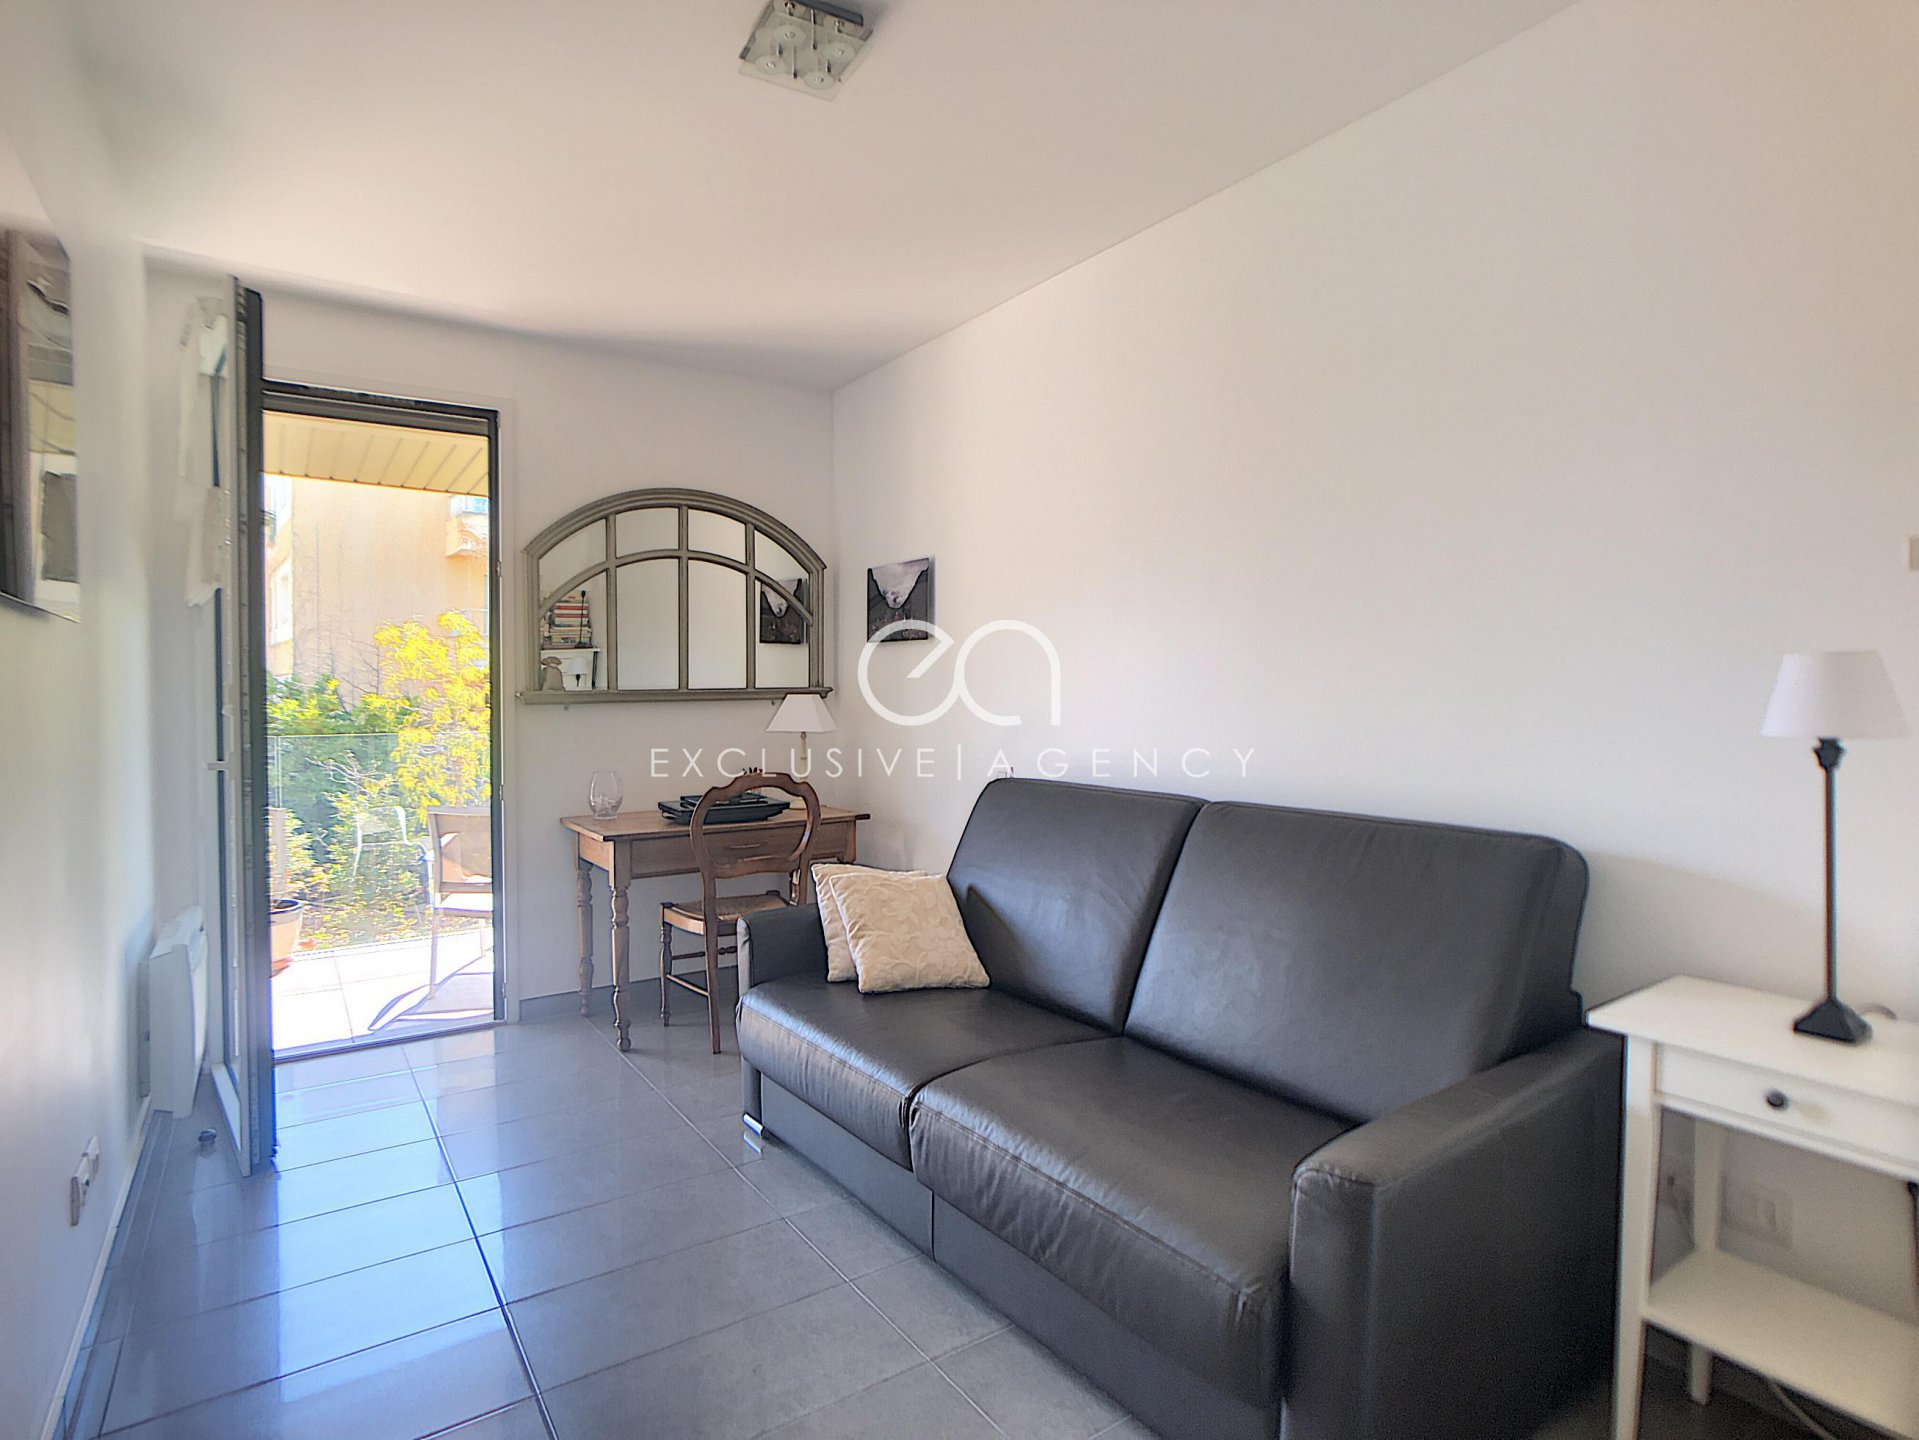 Cannes Oxford 2-bedroom apartment - garage